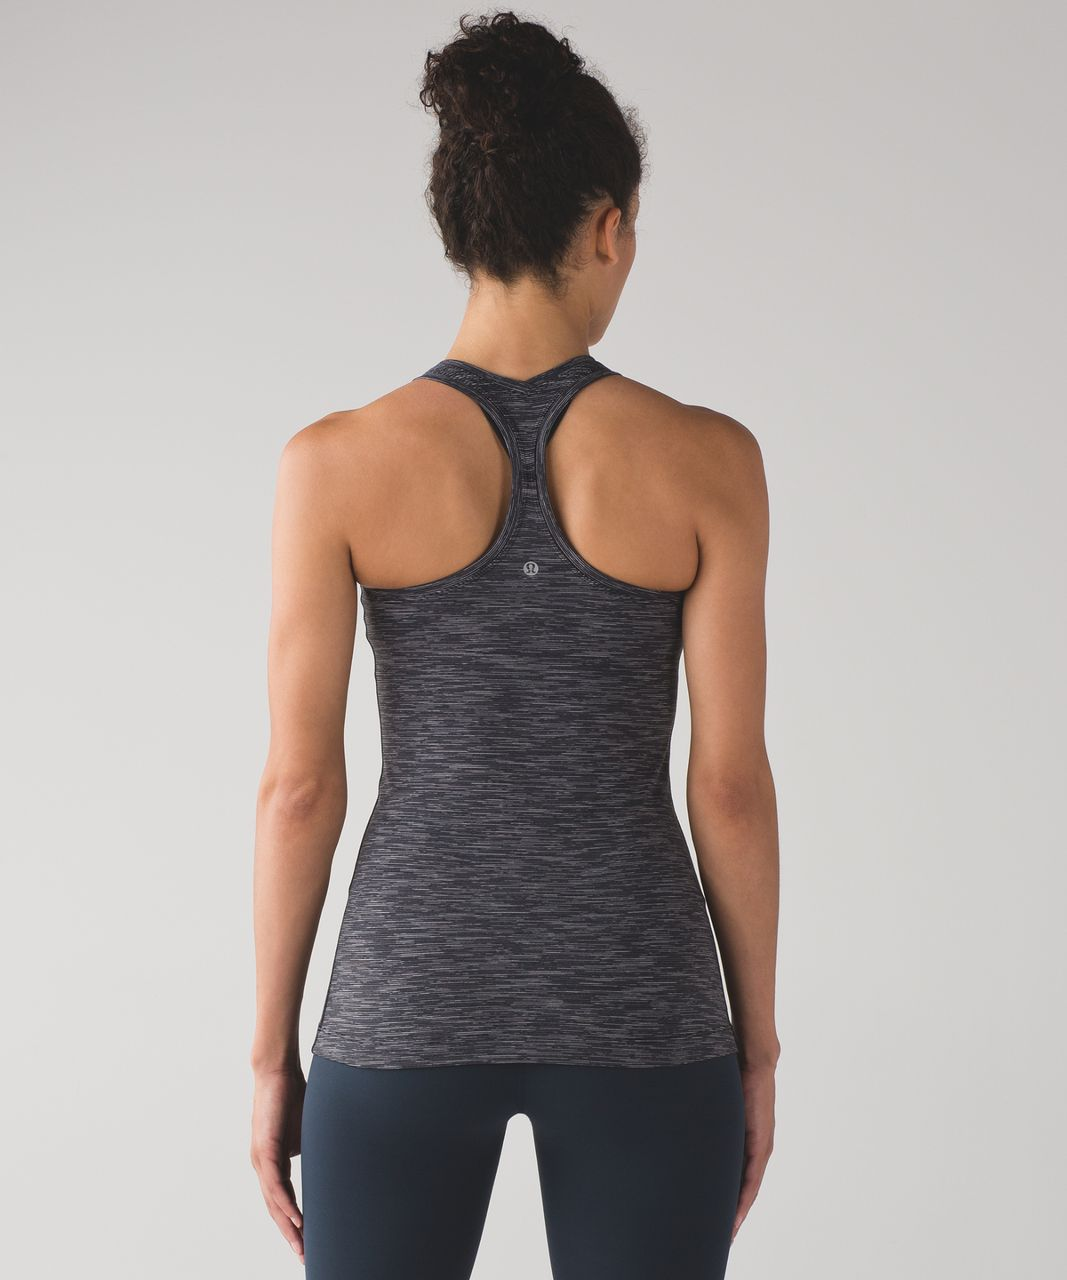 Lululemon Cool Racerback II - Wee Are From Space Deep Coal Battleship